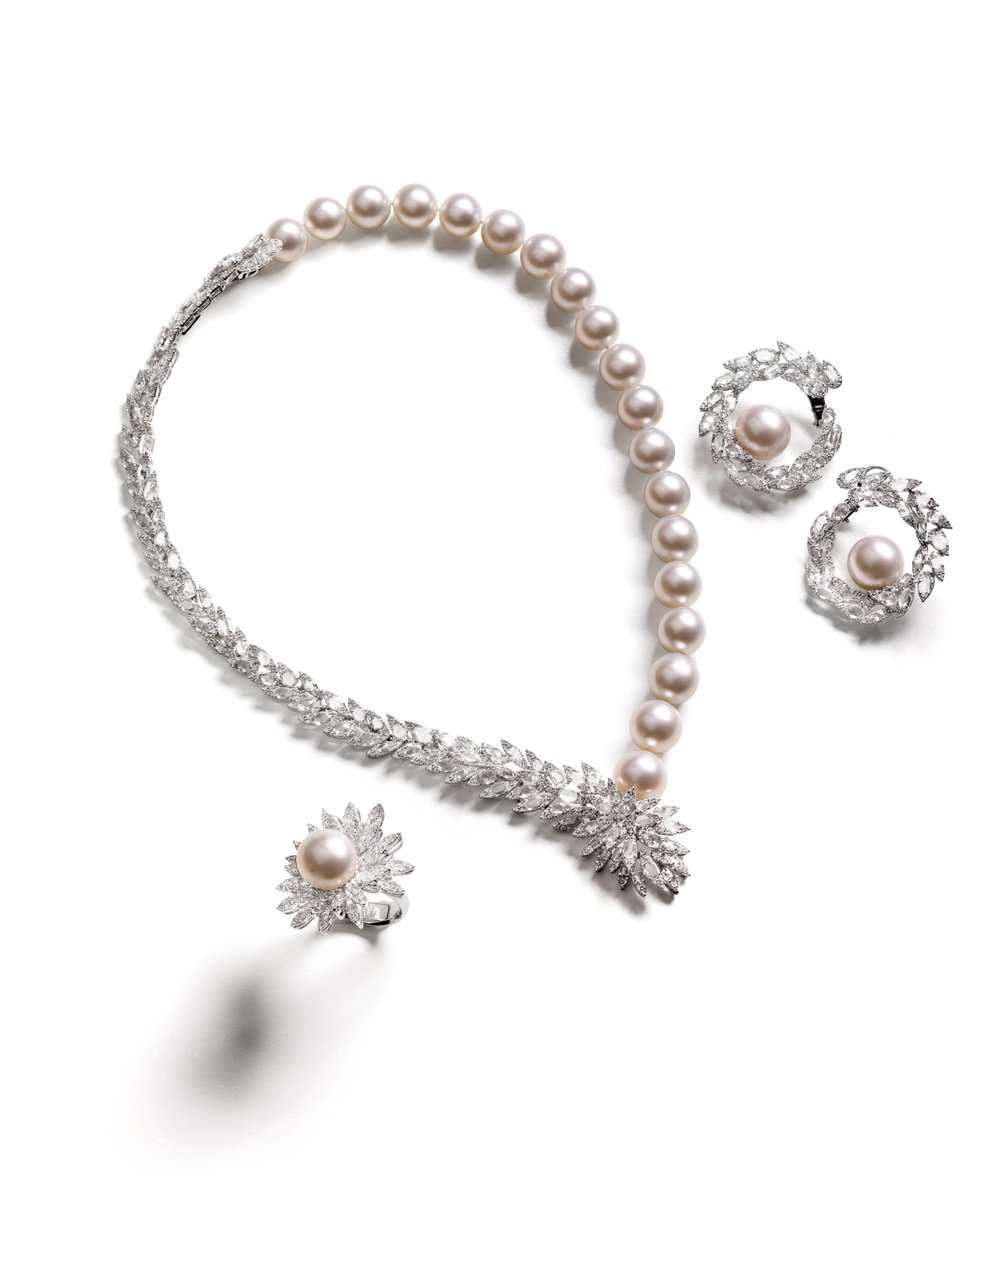 Utopia Parure Pearls and Diamonds set by Palladio Jewellers